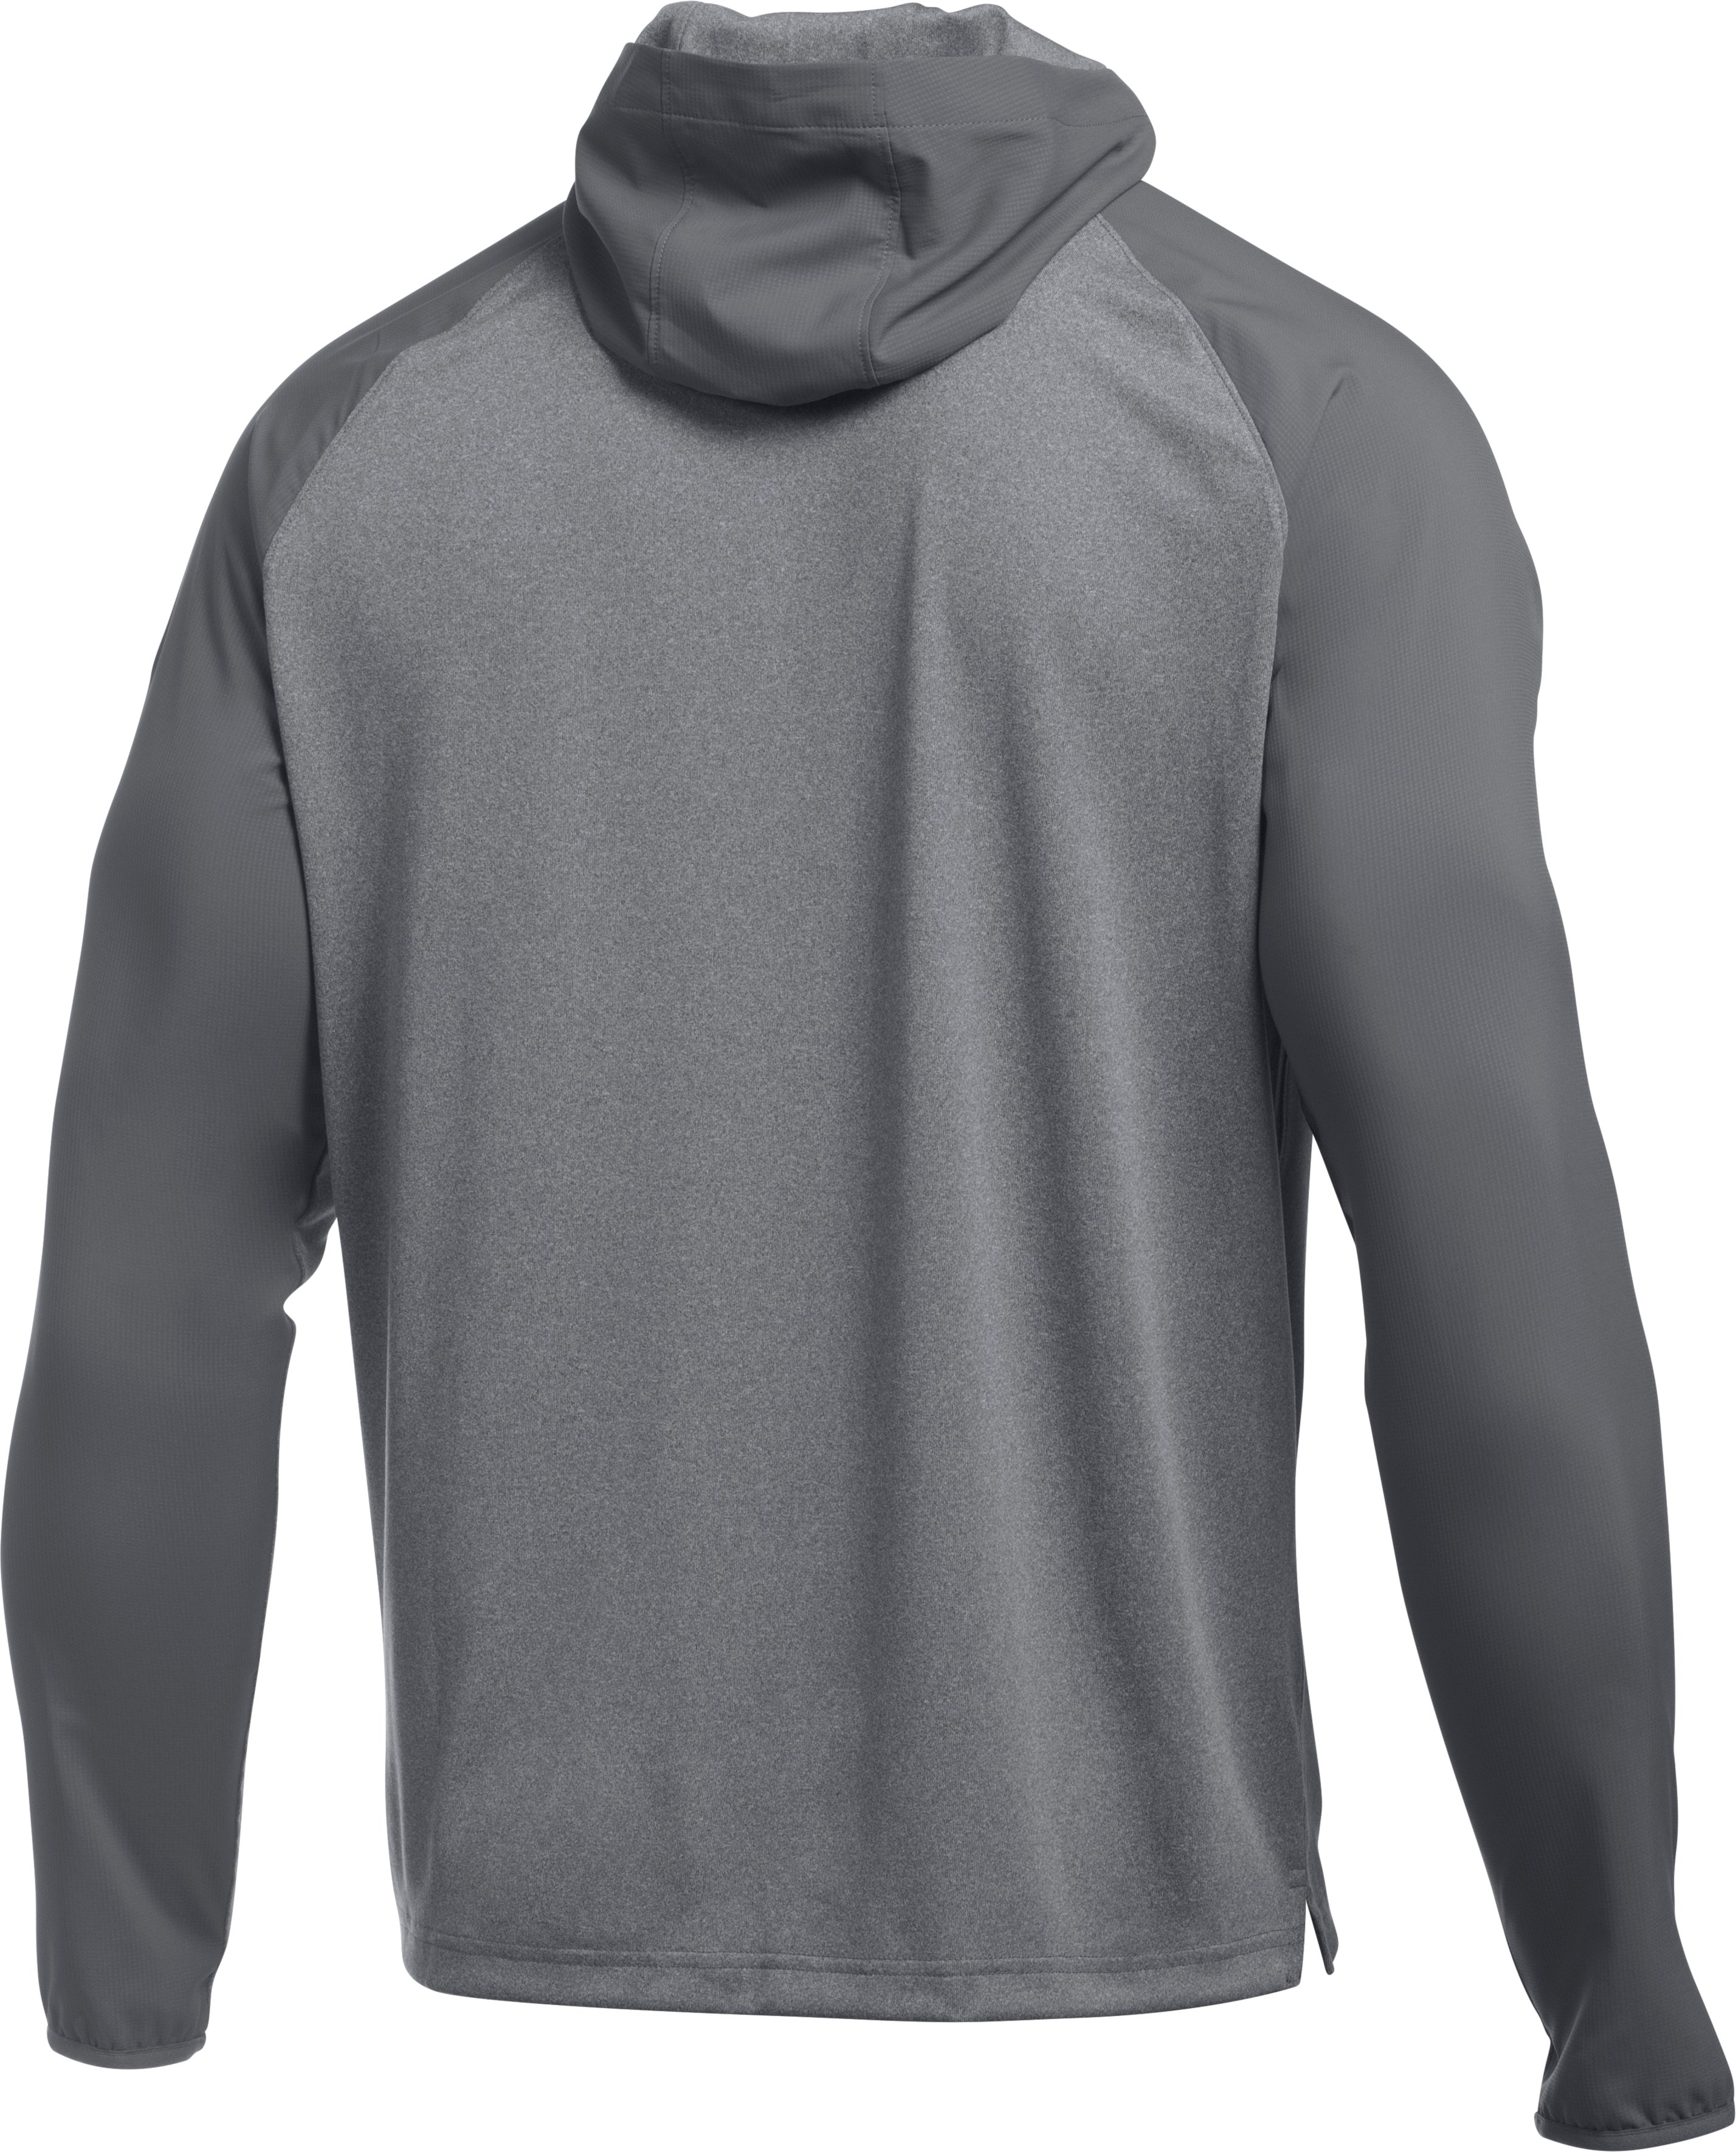 Men's UA Scope LW ¼ Zip Hoodie, Graphite